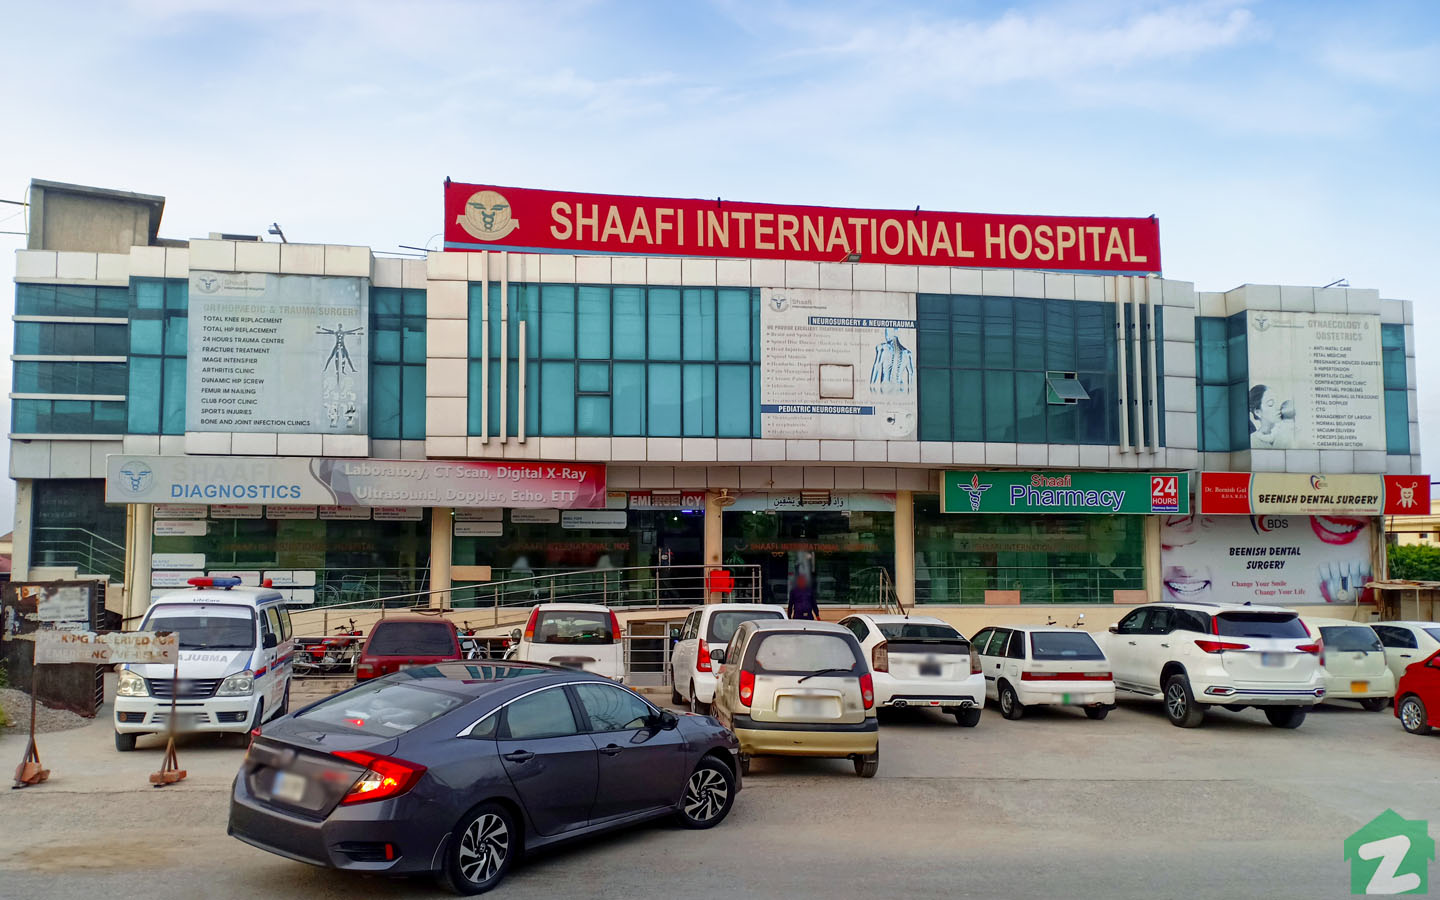 Shaafi International Hospital is operating on main PWD Road in Doctor's Town